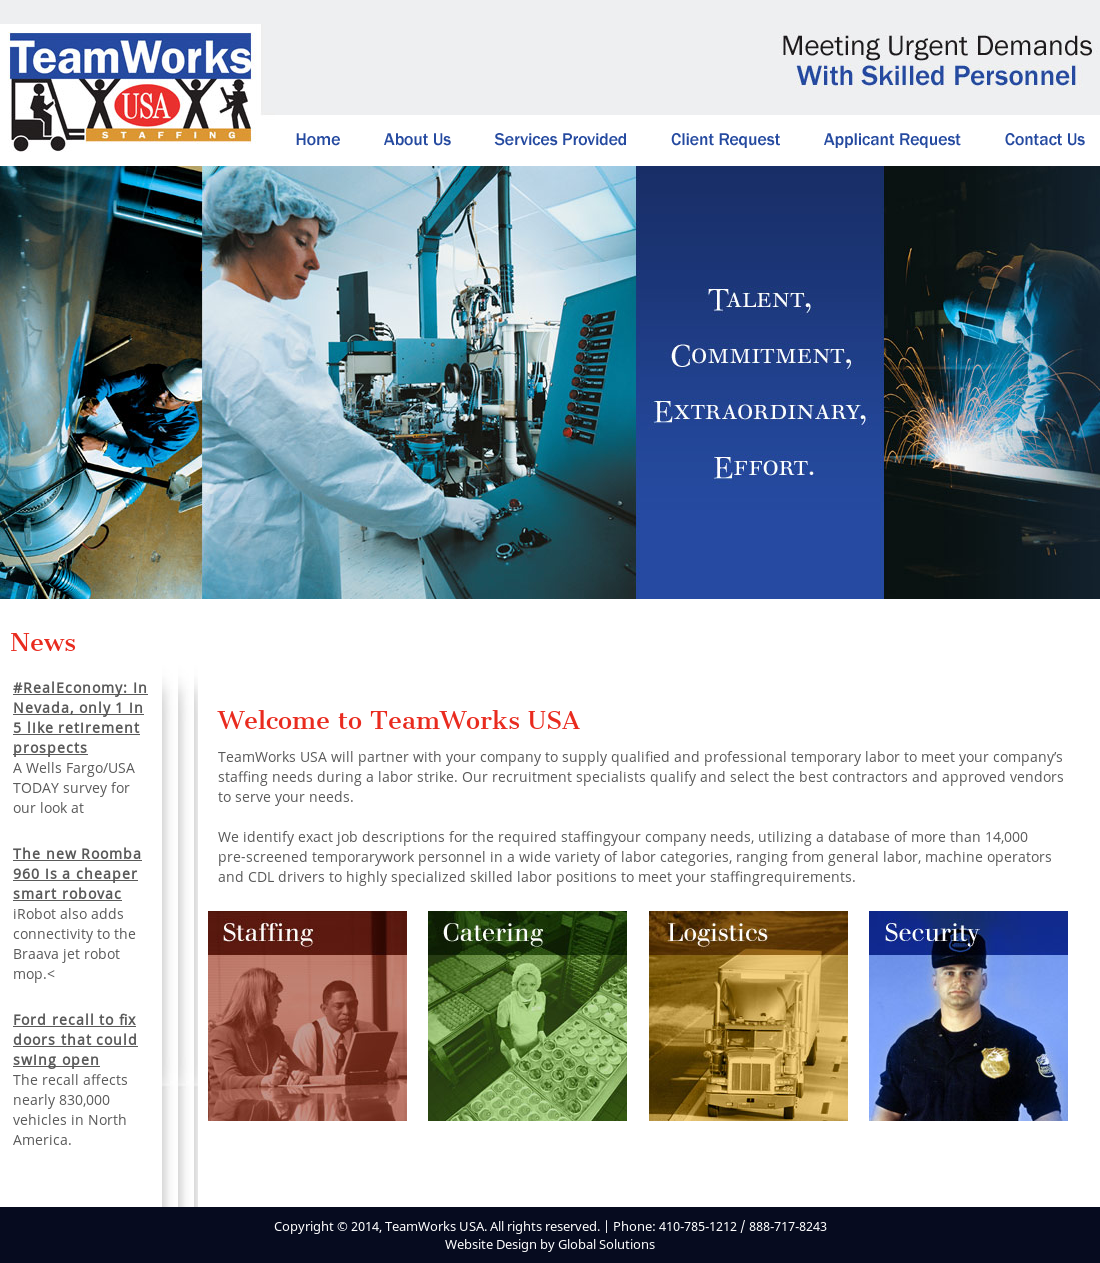 Teamworks Usa Competitors, Revenue and Employees - Owler Company Profile